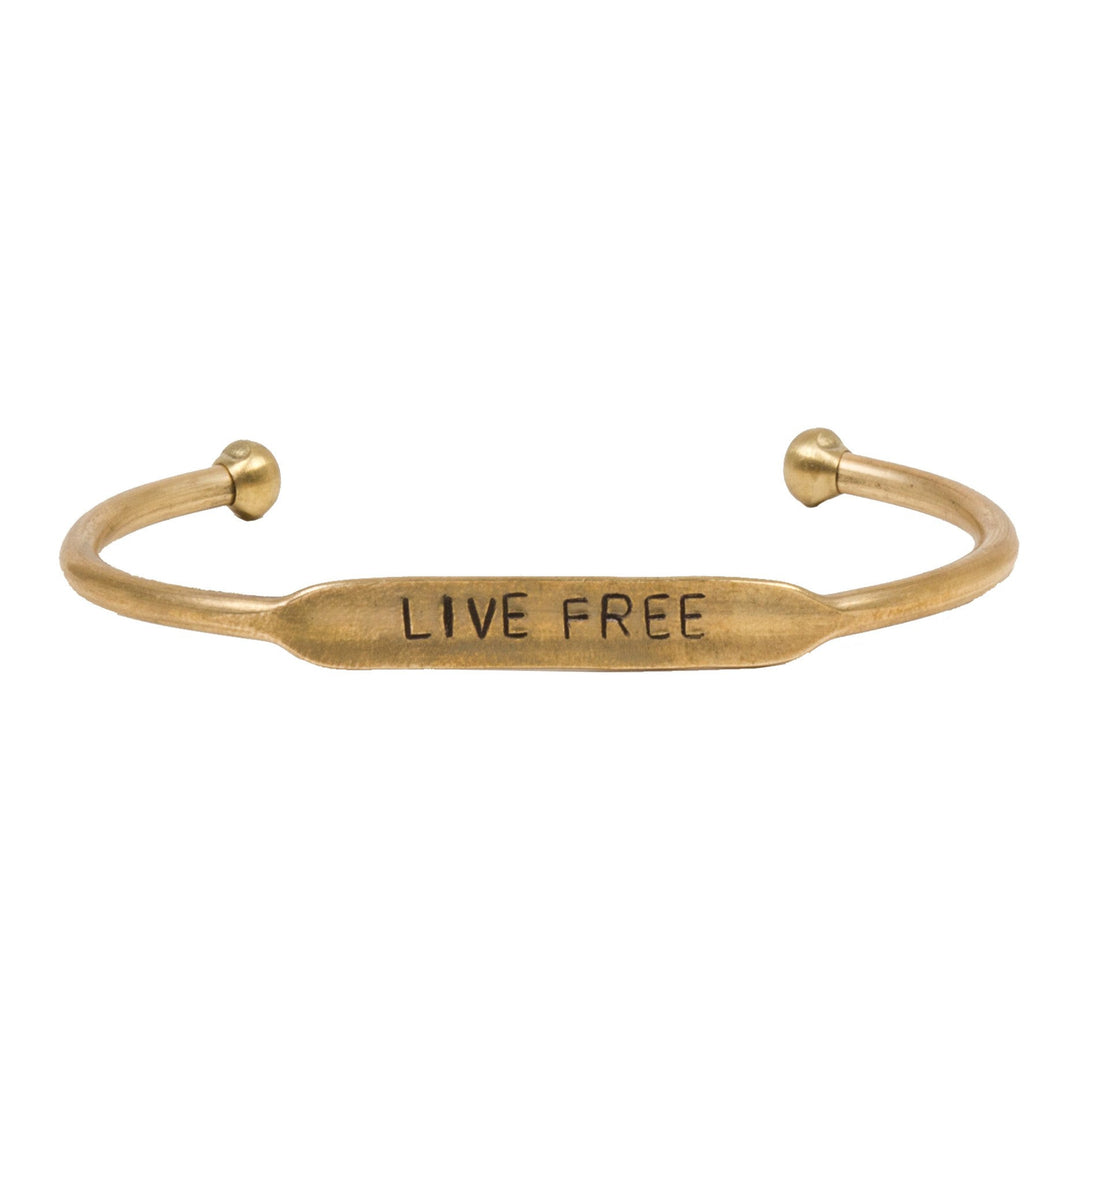 Live Free Bracelet - Jewelry: Women's: Bracelets - Iron and Resin